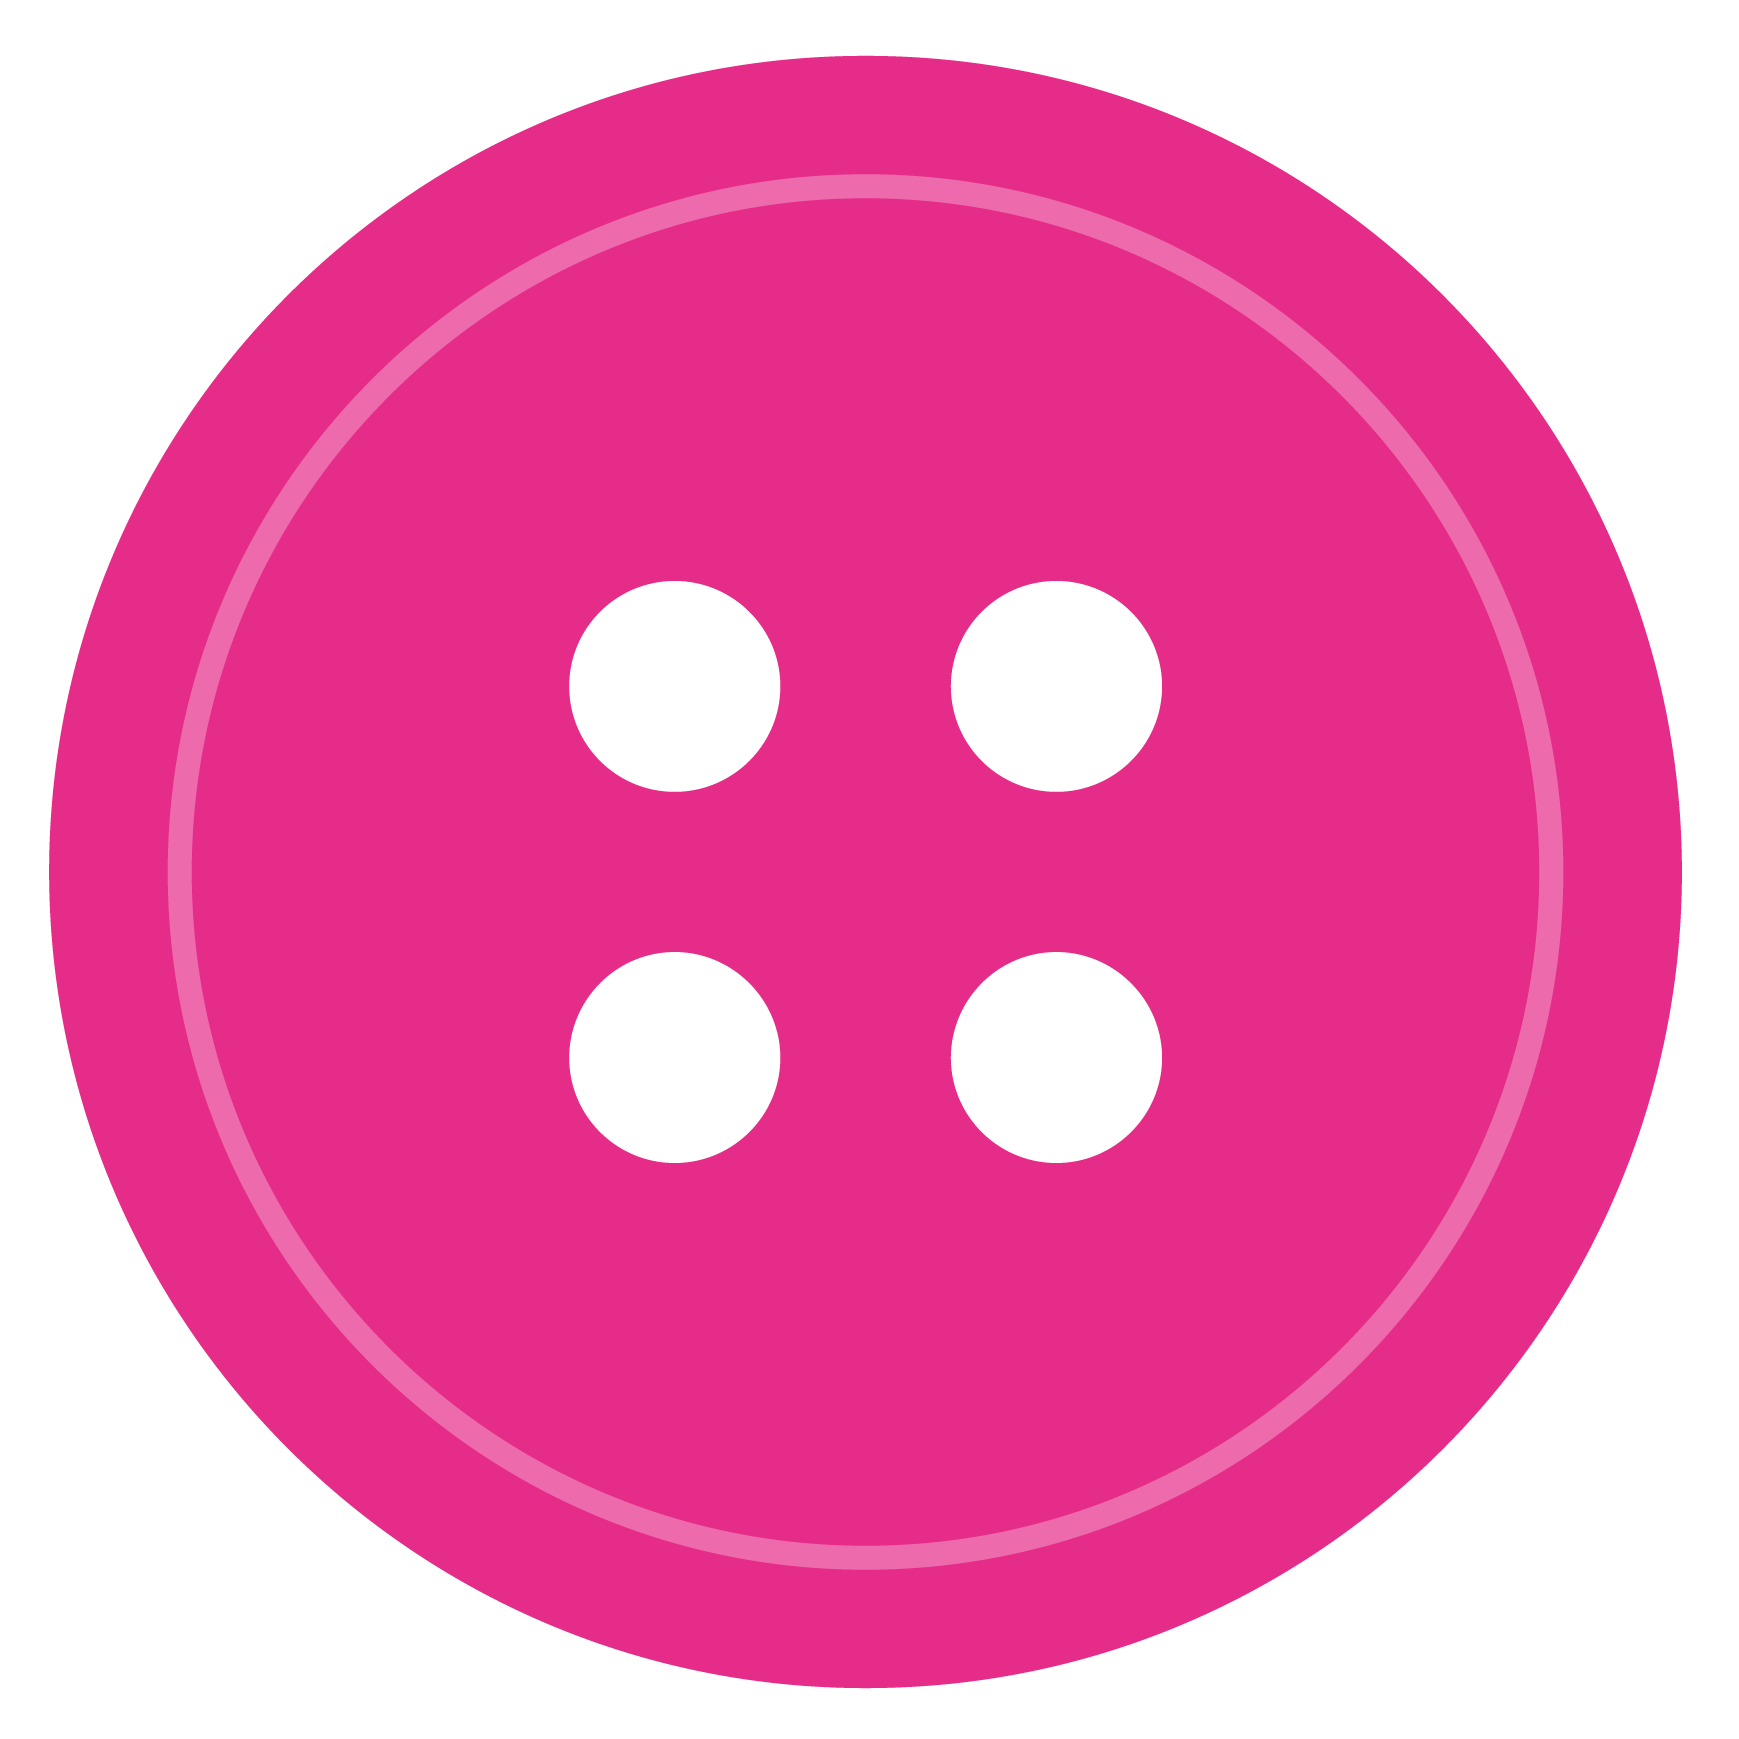 Cartoon drawing of a pink button.